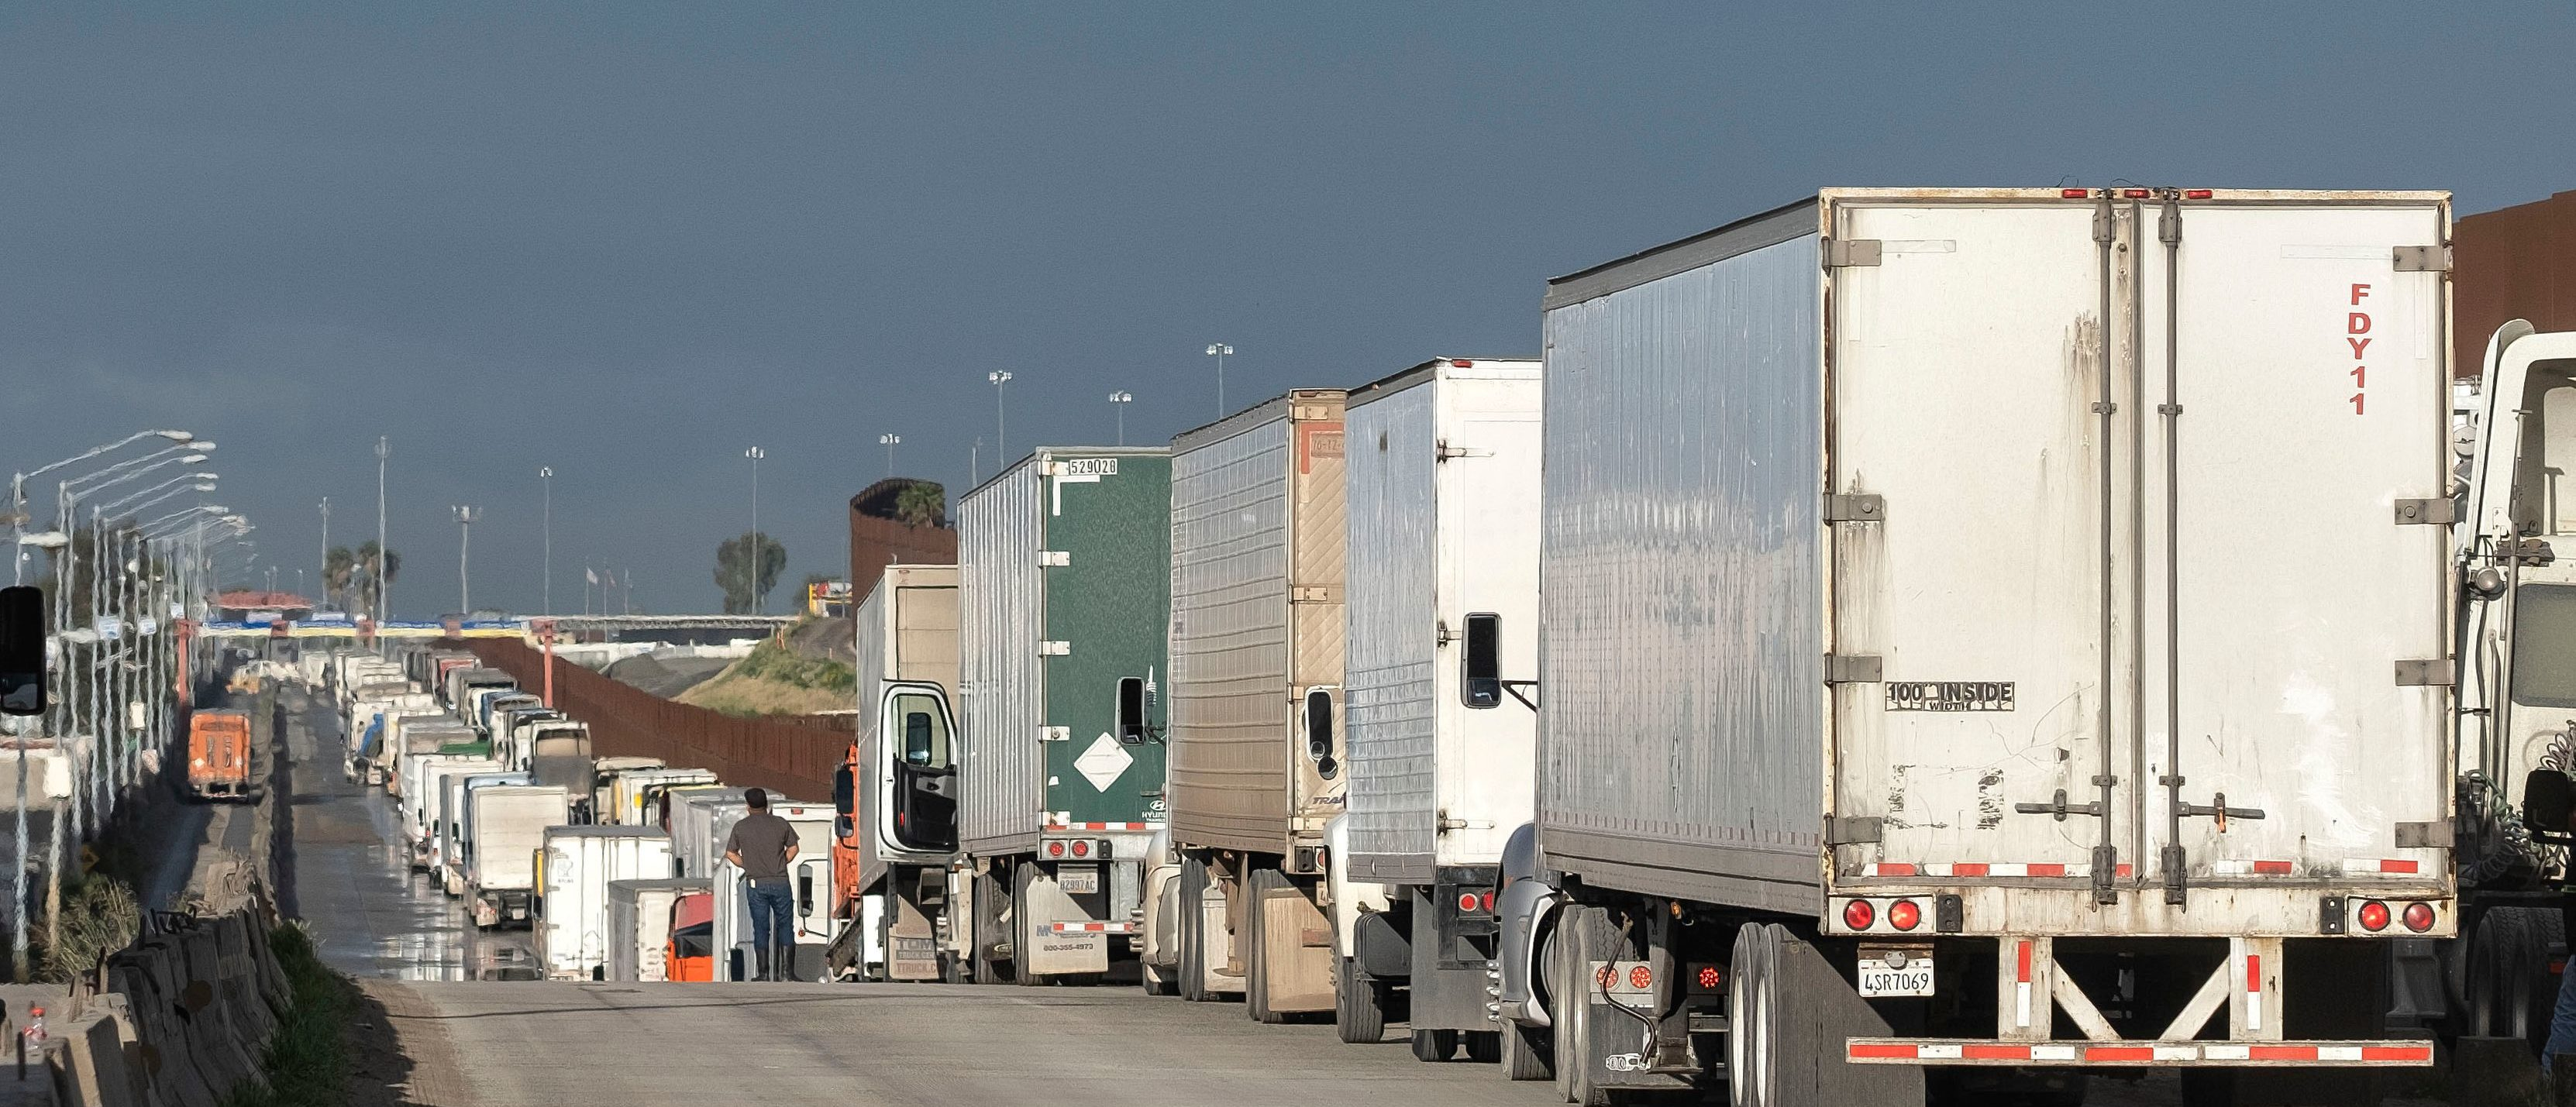 Trucks line up before heading to the United States at the Otay commercial port of entry on the US-Mexico border in Tijuana, Baja California State, Mexico, on March 20, 2020. - Mexico and the United States have agreed to 'restrict non-essential' border crossings in an attempt to slowdown the COVID-19 spreading, limiting the crossings to commercial, medical and essentials. (Photo by Guillermo ARIAS / AFP) (Photo by GUILLERMO ARIAS/AFP via Getty Images)